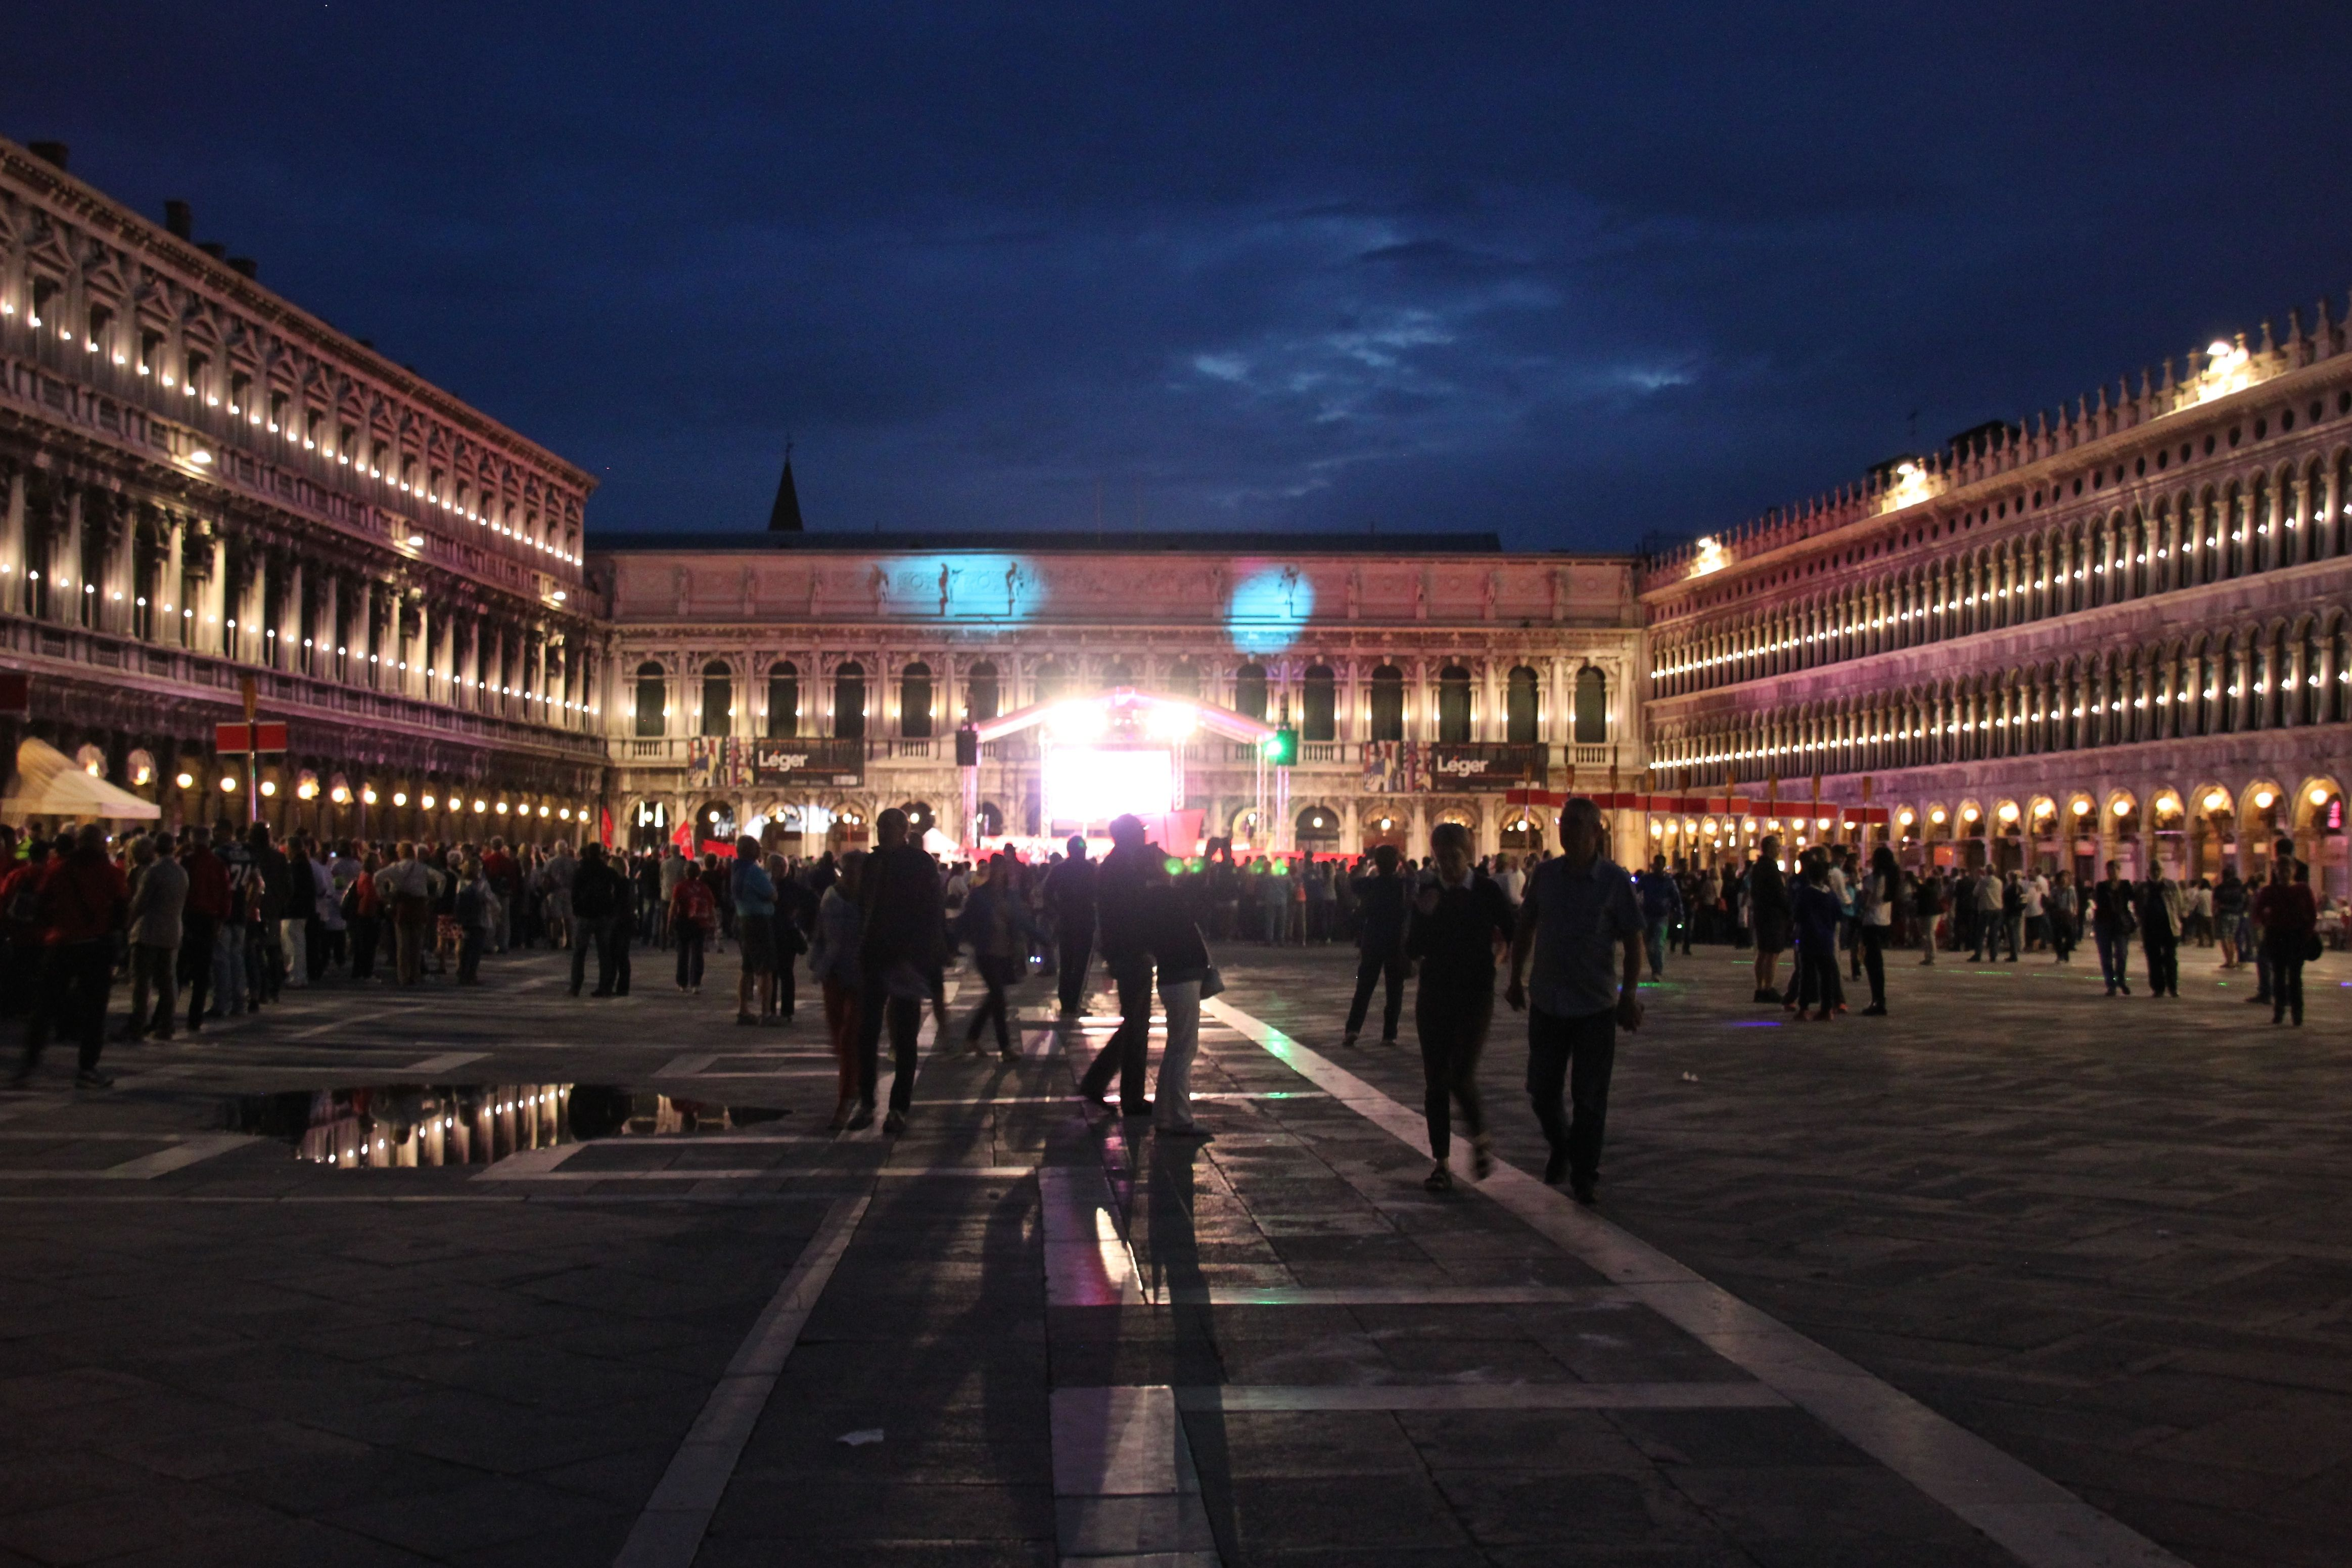 Celebrating the opening ceremony to the National Paralympic Games 2014 in Piazza San Marco